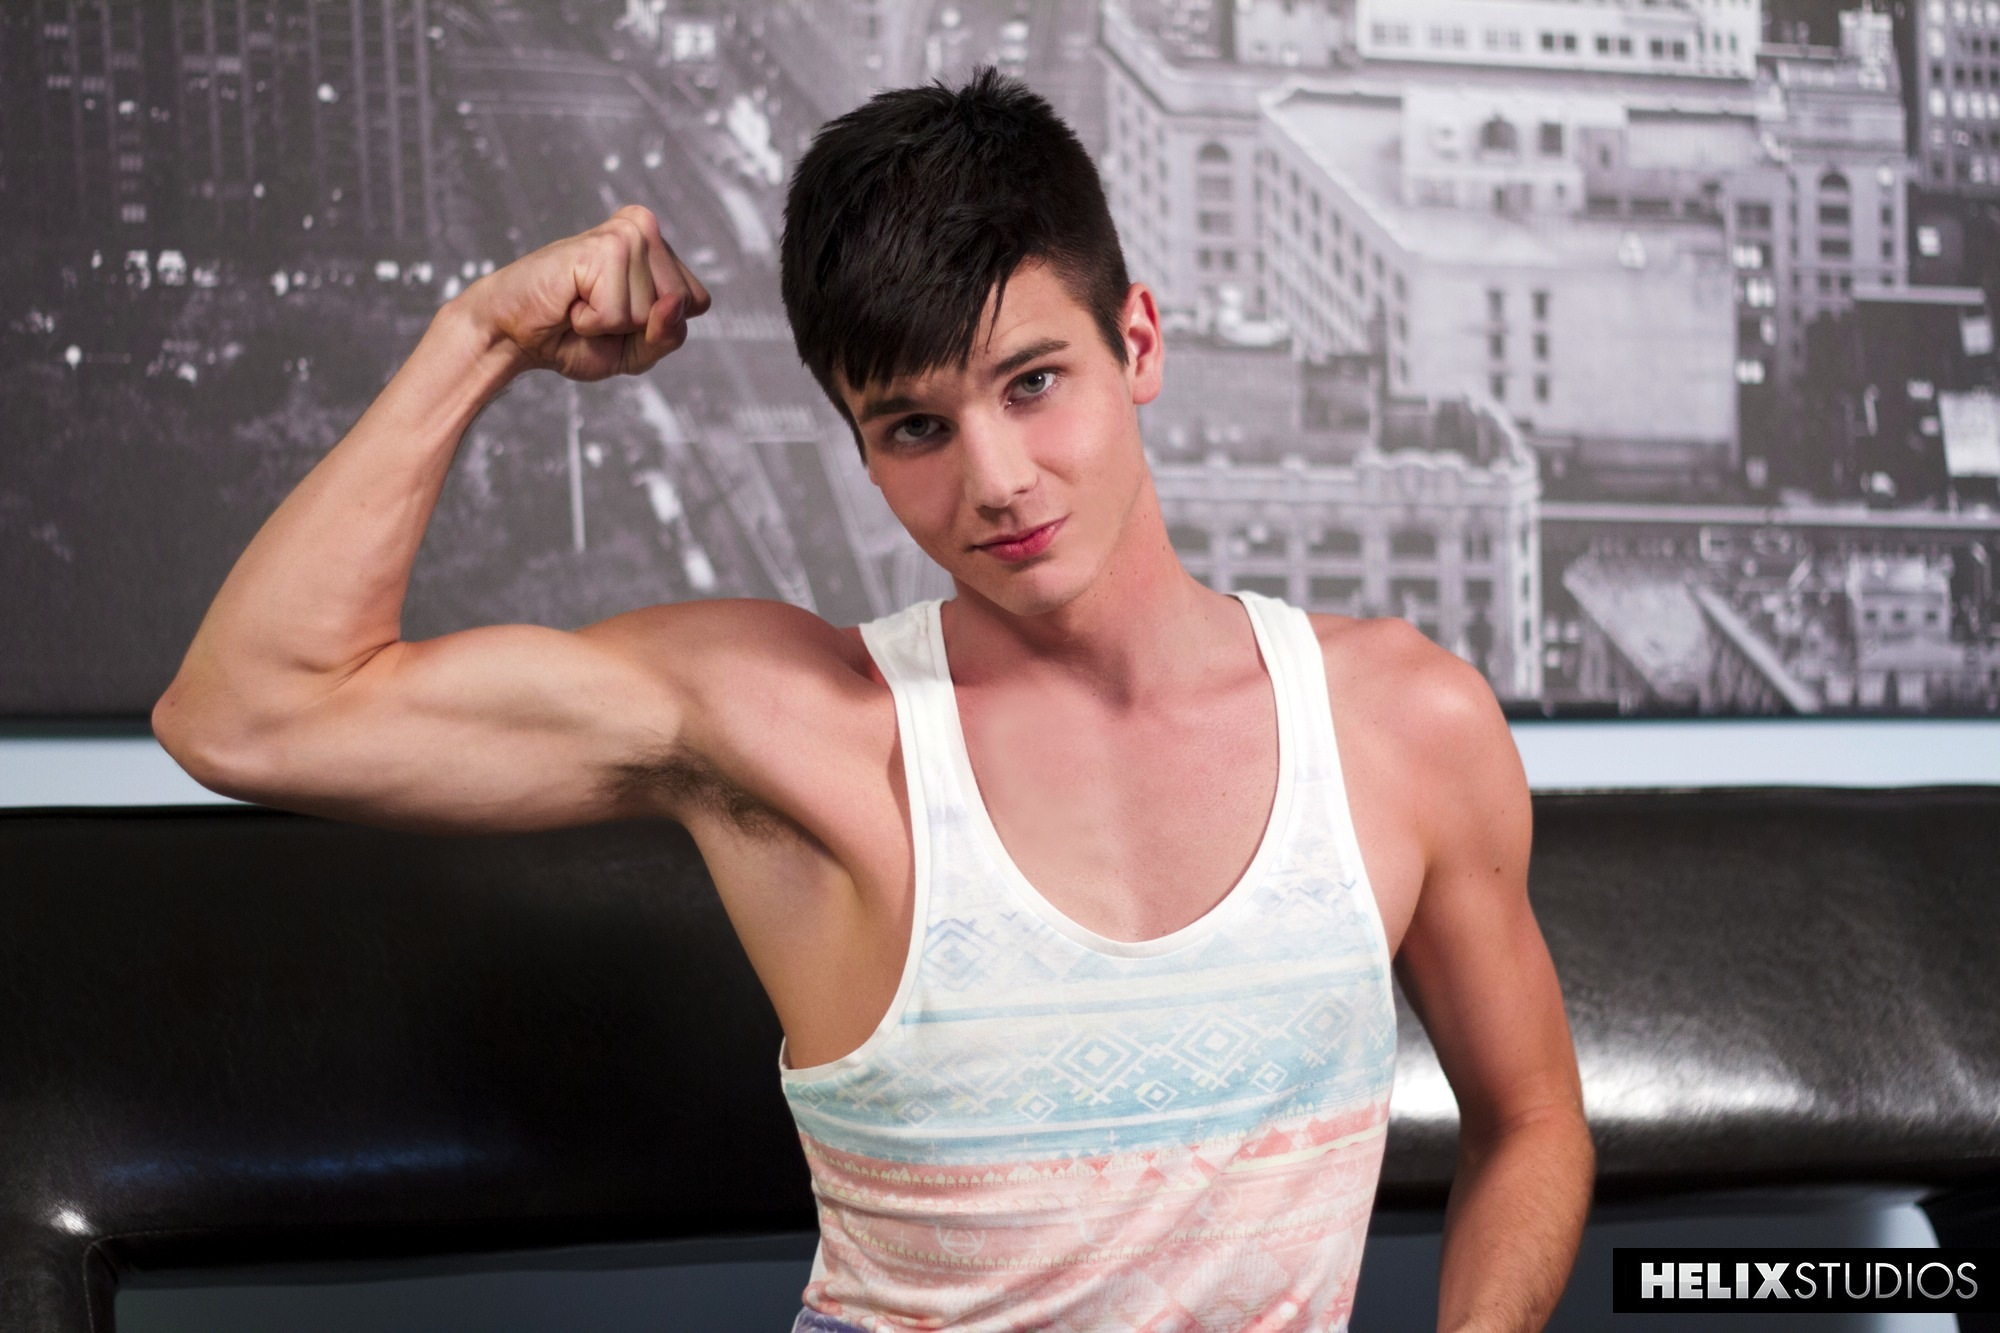 Christian Collins shows off his new gym body during his return to Helix Studios